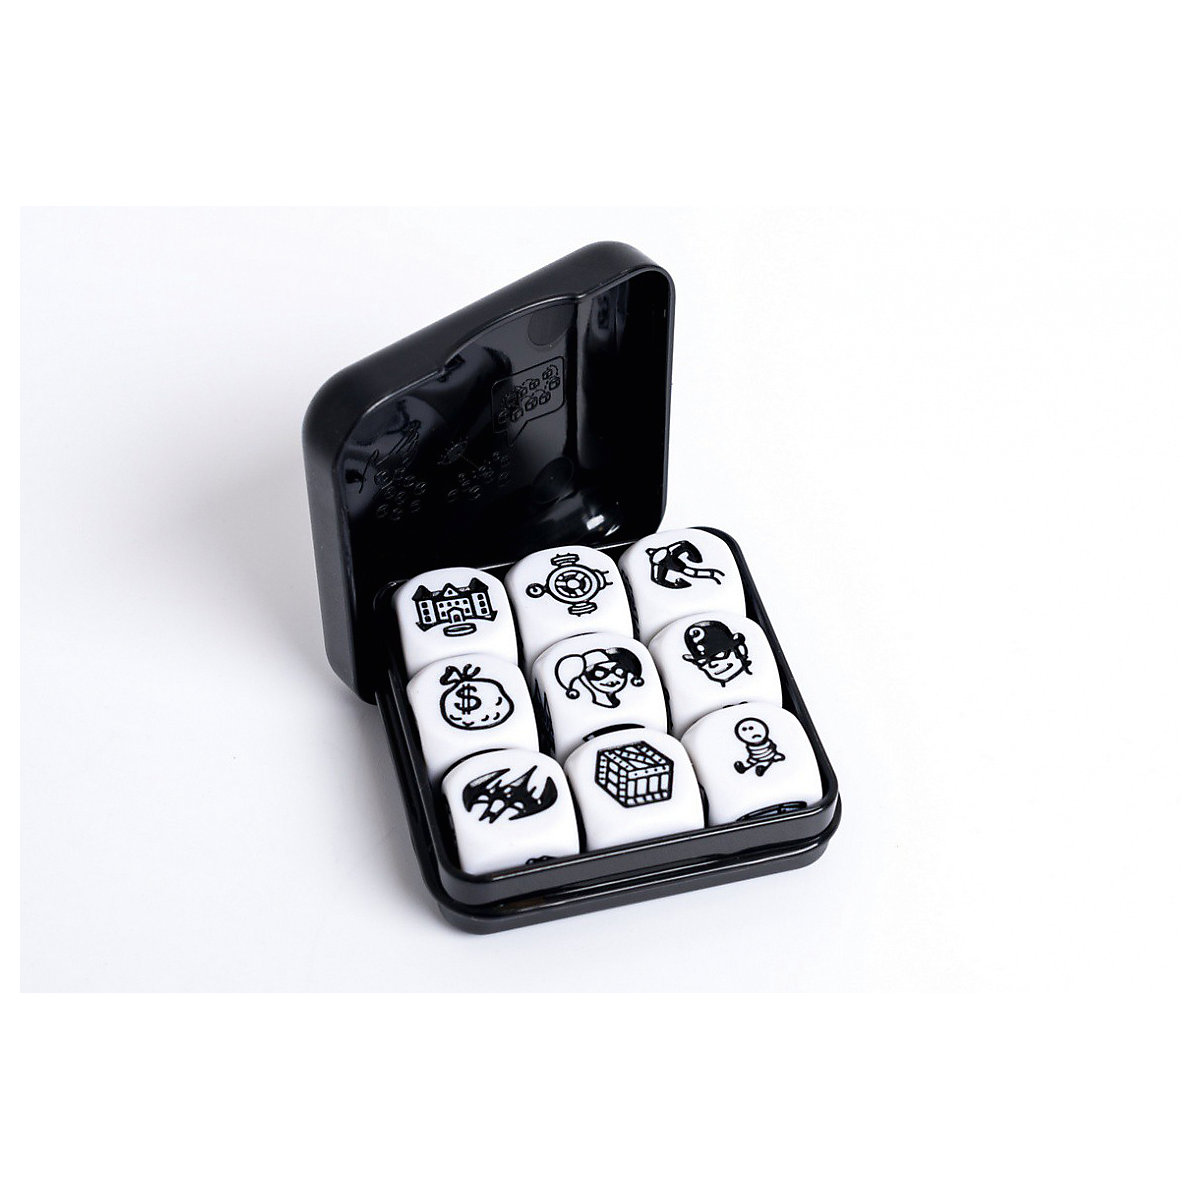 Rory's Story Cubes Magic Cubes 5348107 cube puzzle development boy girl boys girls game play toy toys childrens play ocean ball pool toy house